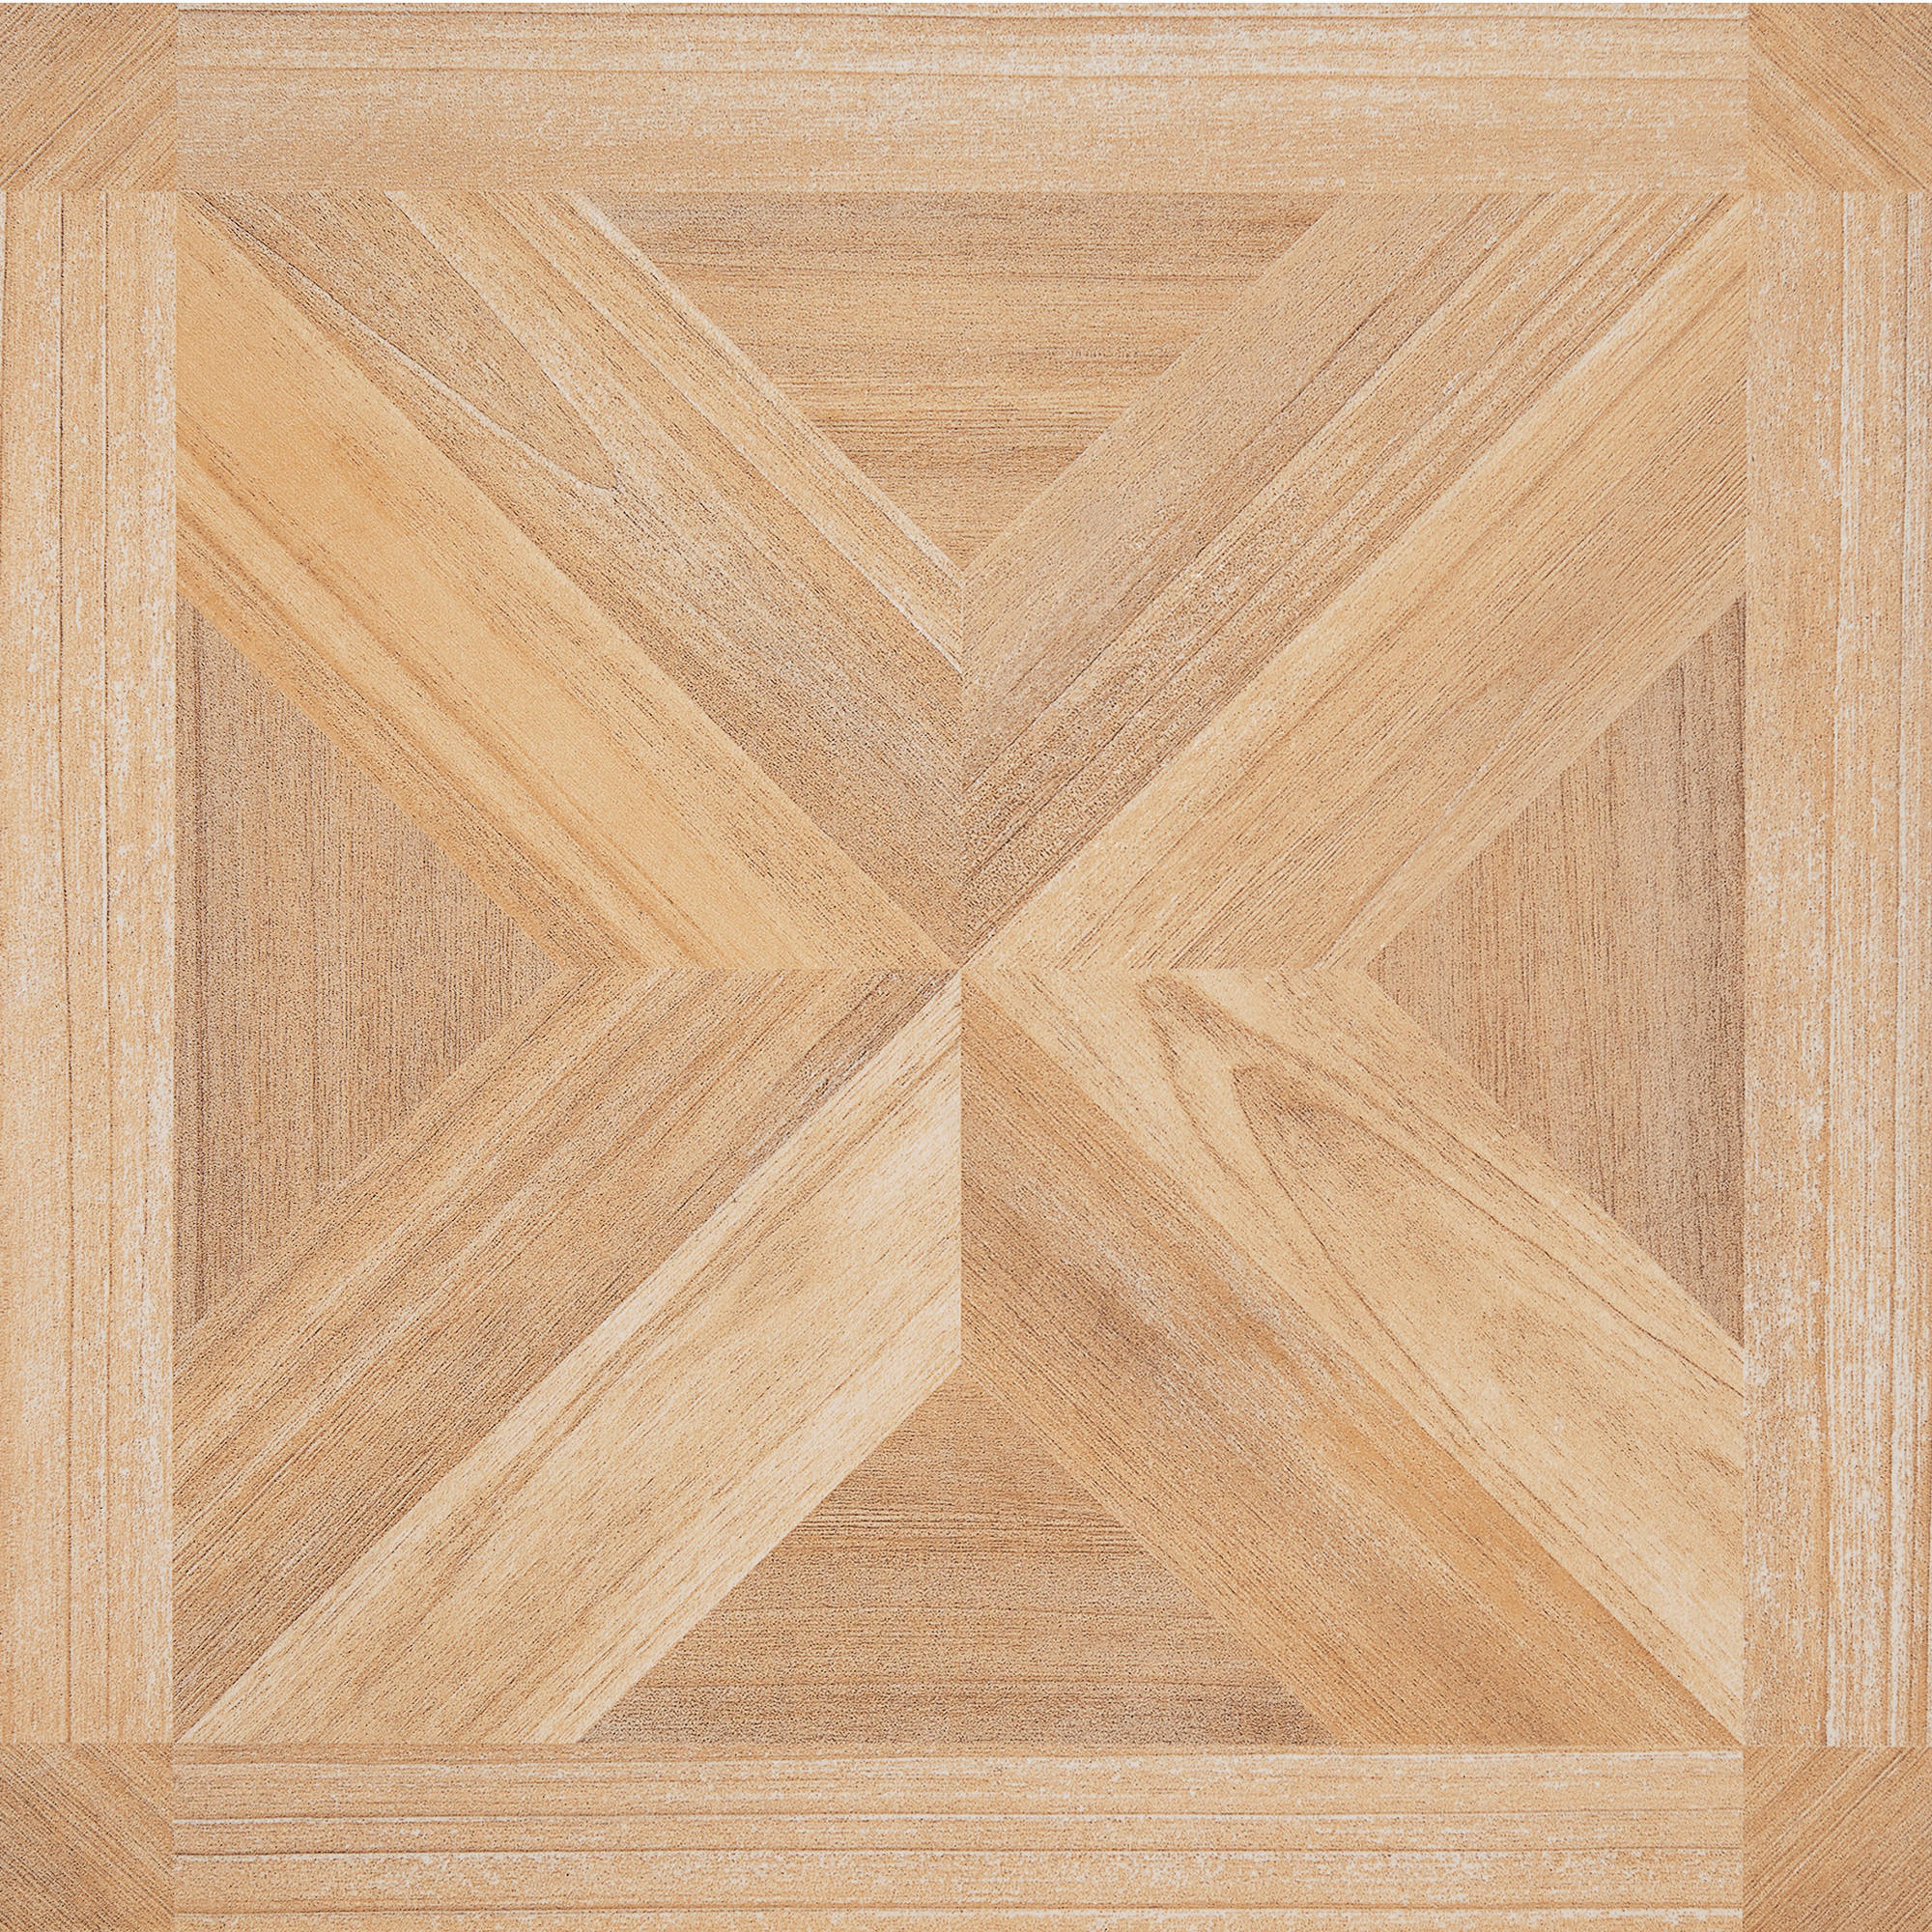 Nexus maple x parquet 12x12 self adhesive vinyl floor tile 20 nexus maple x parquet 12x12 self adhesive vinyl floor tile 20 tiles20 sqft walmart doublecrazyfo Choice Image